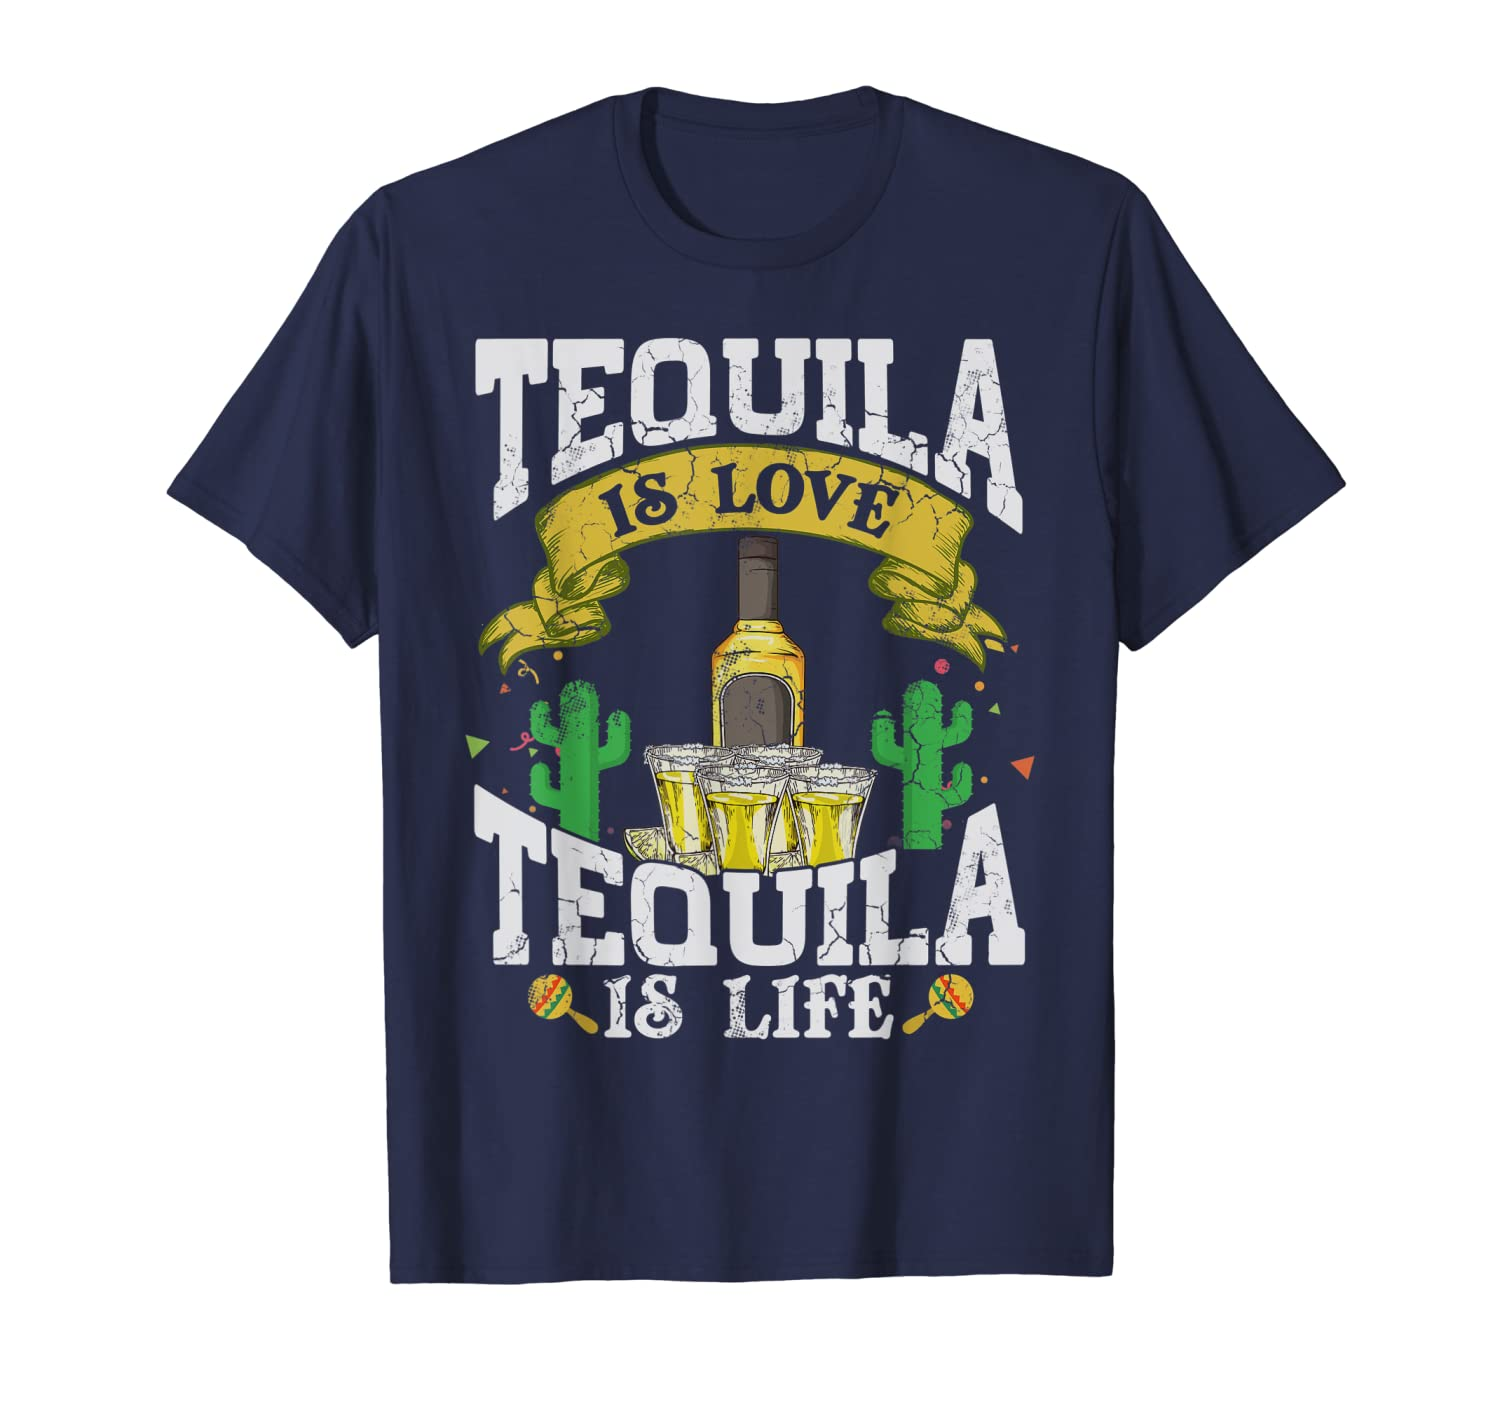 Amazon.com: Cinco de Mayo Tequila Funny Quotes Humor Sayings ...